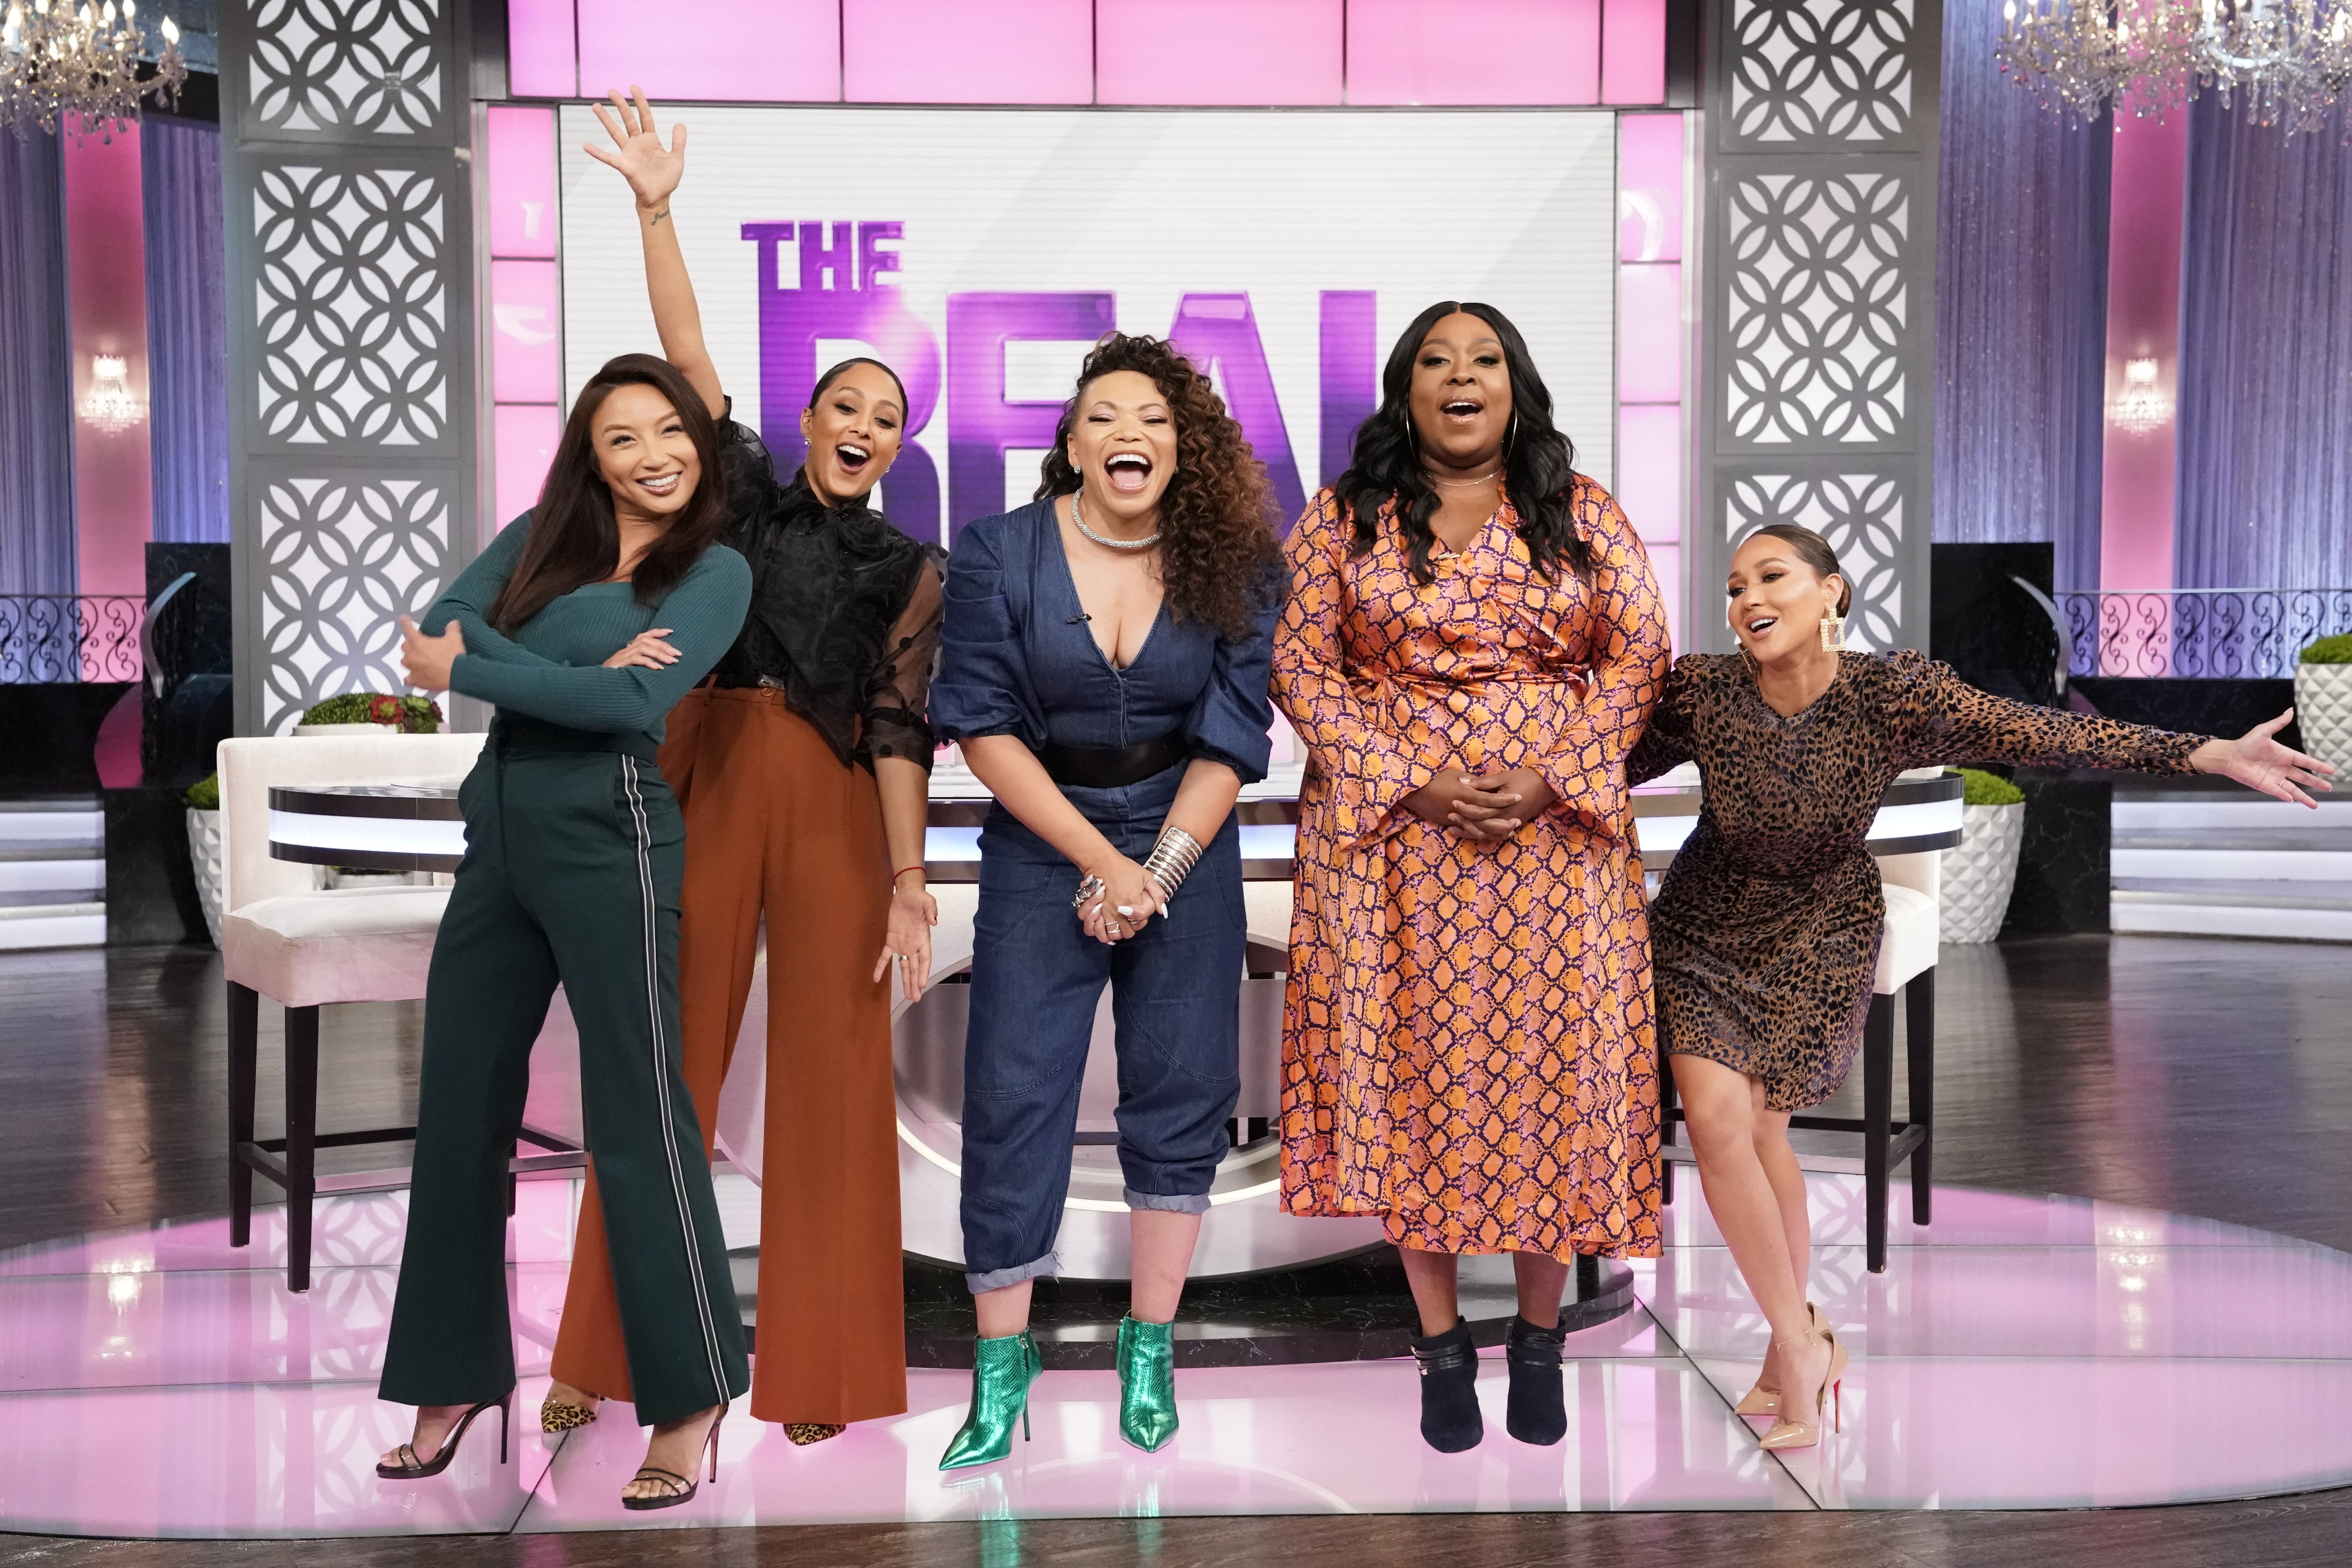 THE REAL Welcomes Actor Michael Ealy, Guest Co-Host Tisha Campbell And Loni Love Has a Big Announcement